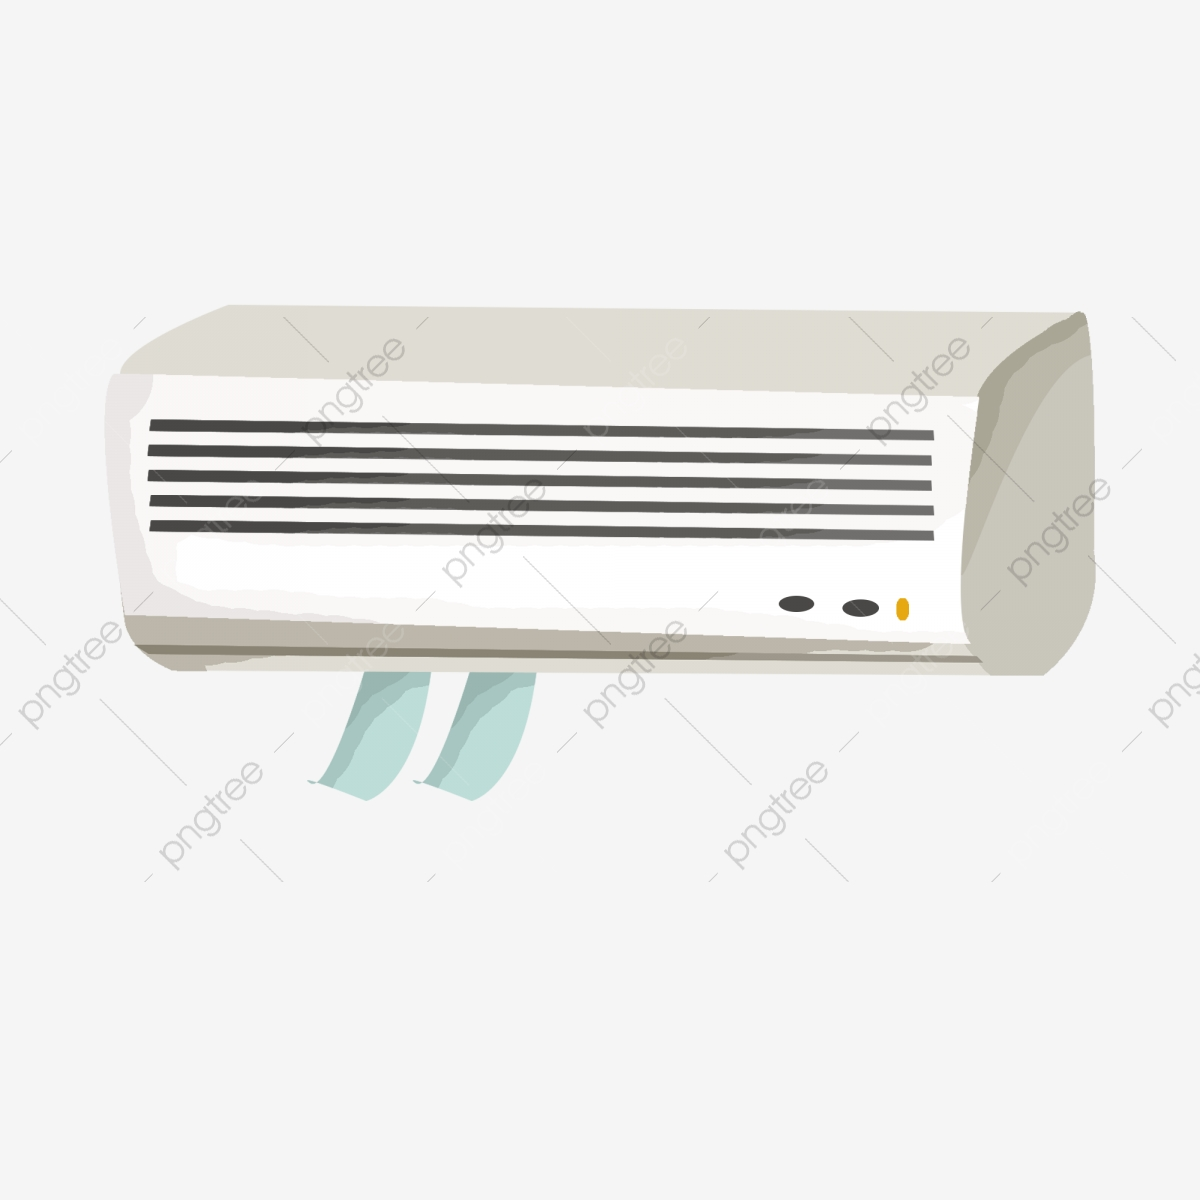 Air Conditioner Png Images Vector And Psd Files Free Download On Pngtree